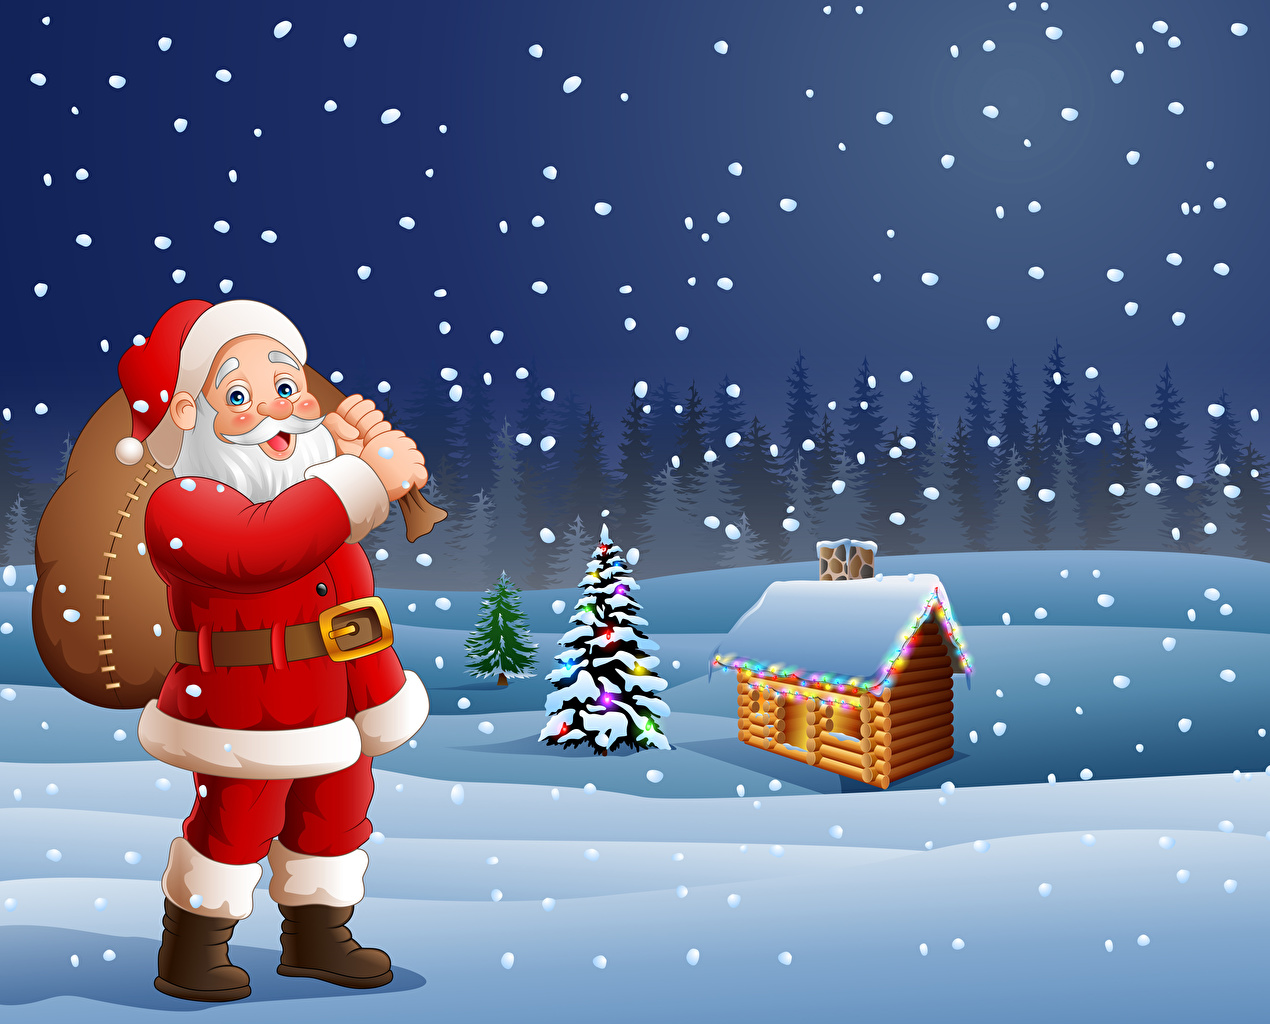 Image New year Winter Santa Claus Snow Building Vector Graphics Christmas Houses